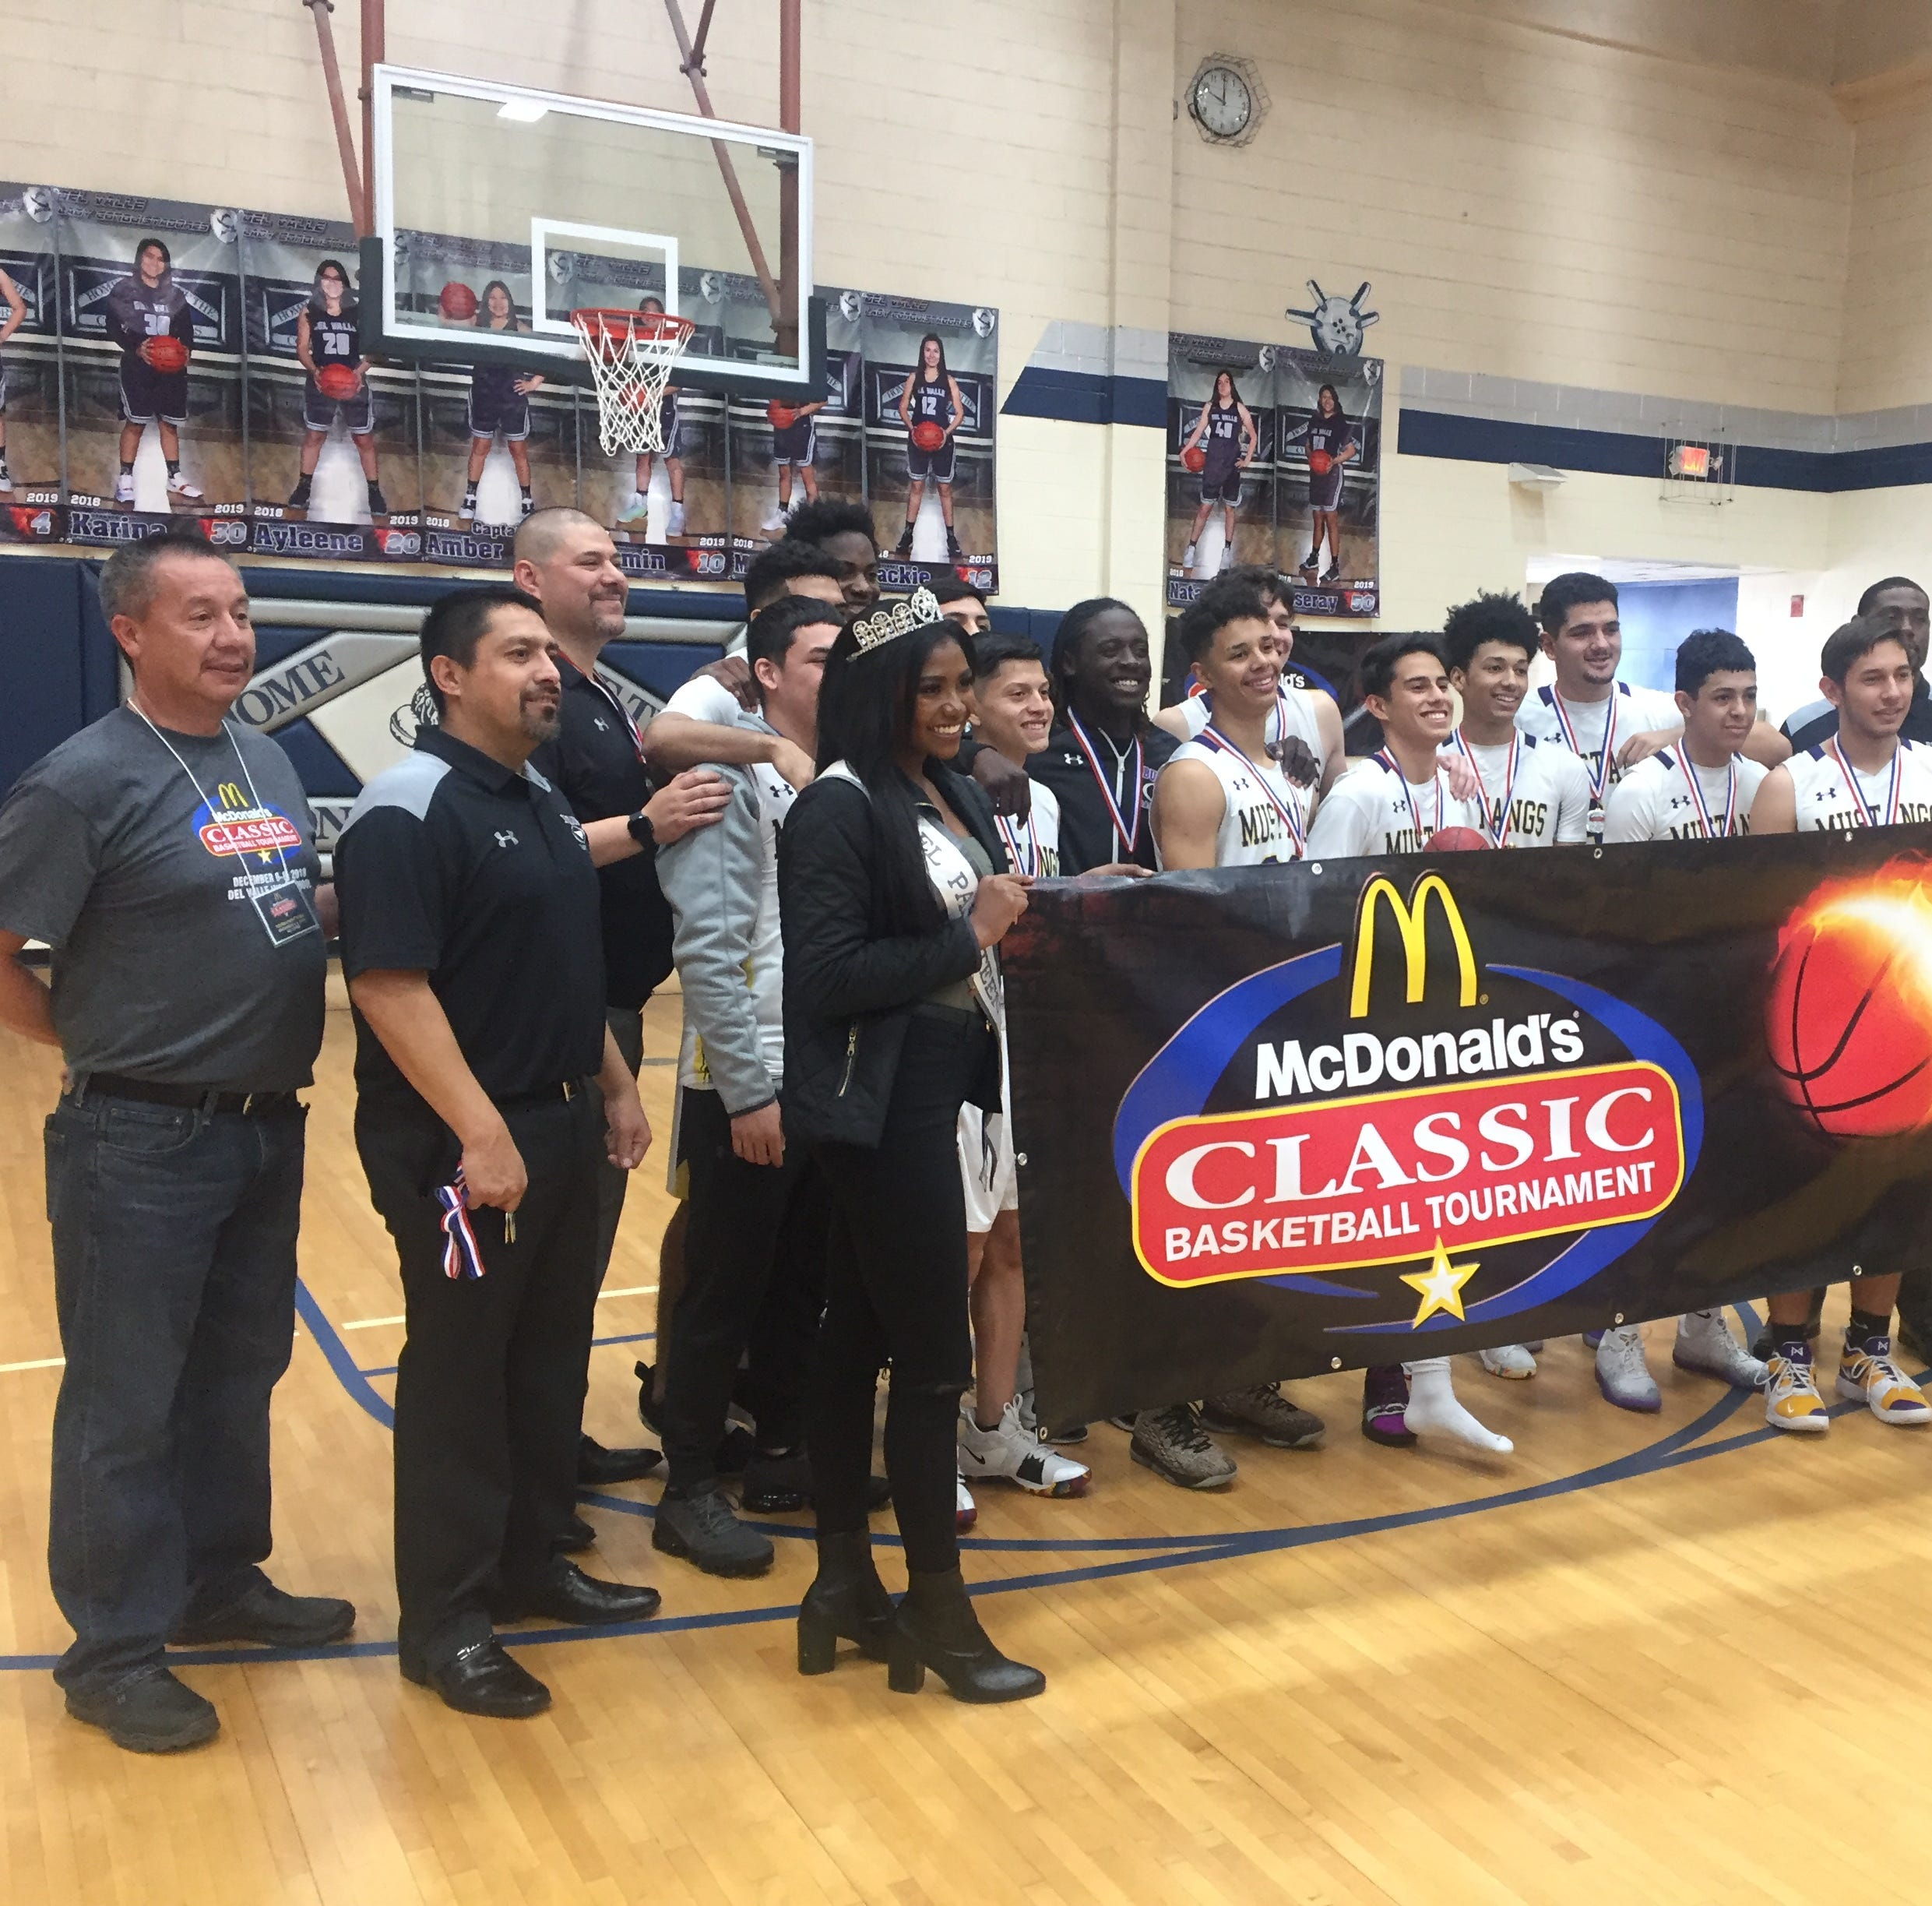 The Burges boys basketball team won the McDonald's Classic Basketball Tournament on Saturday at Del Valle High School.